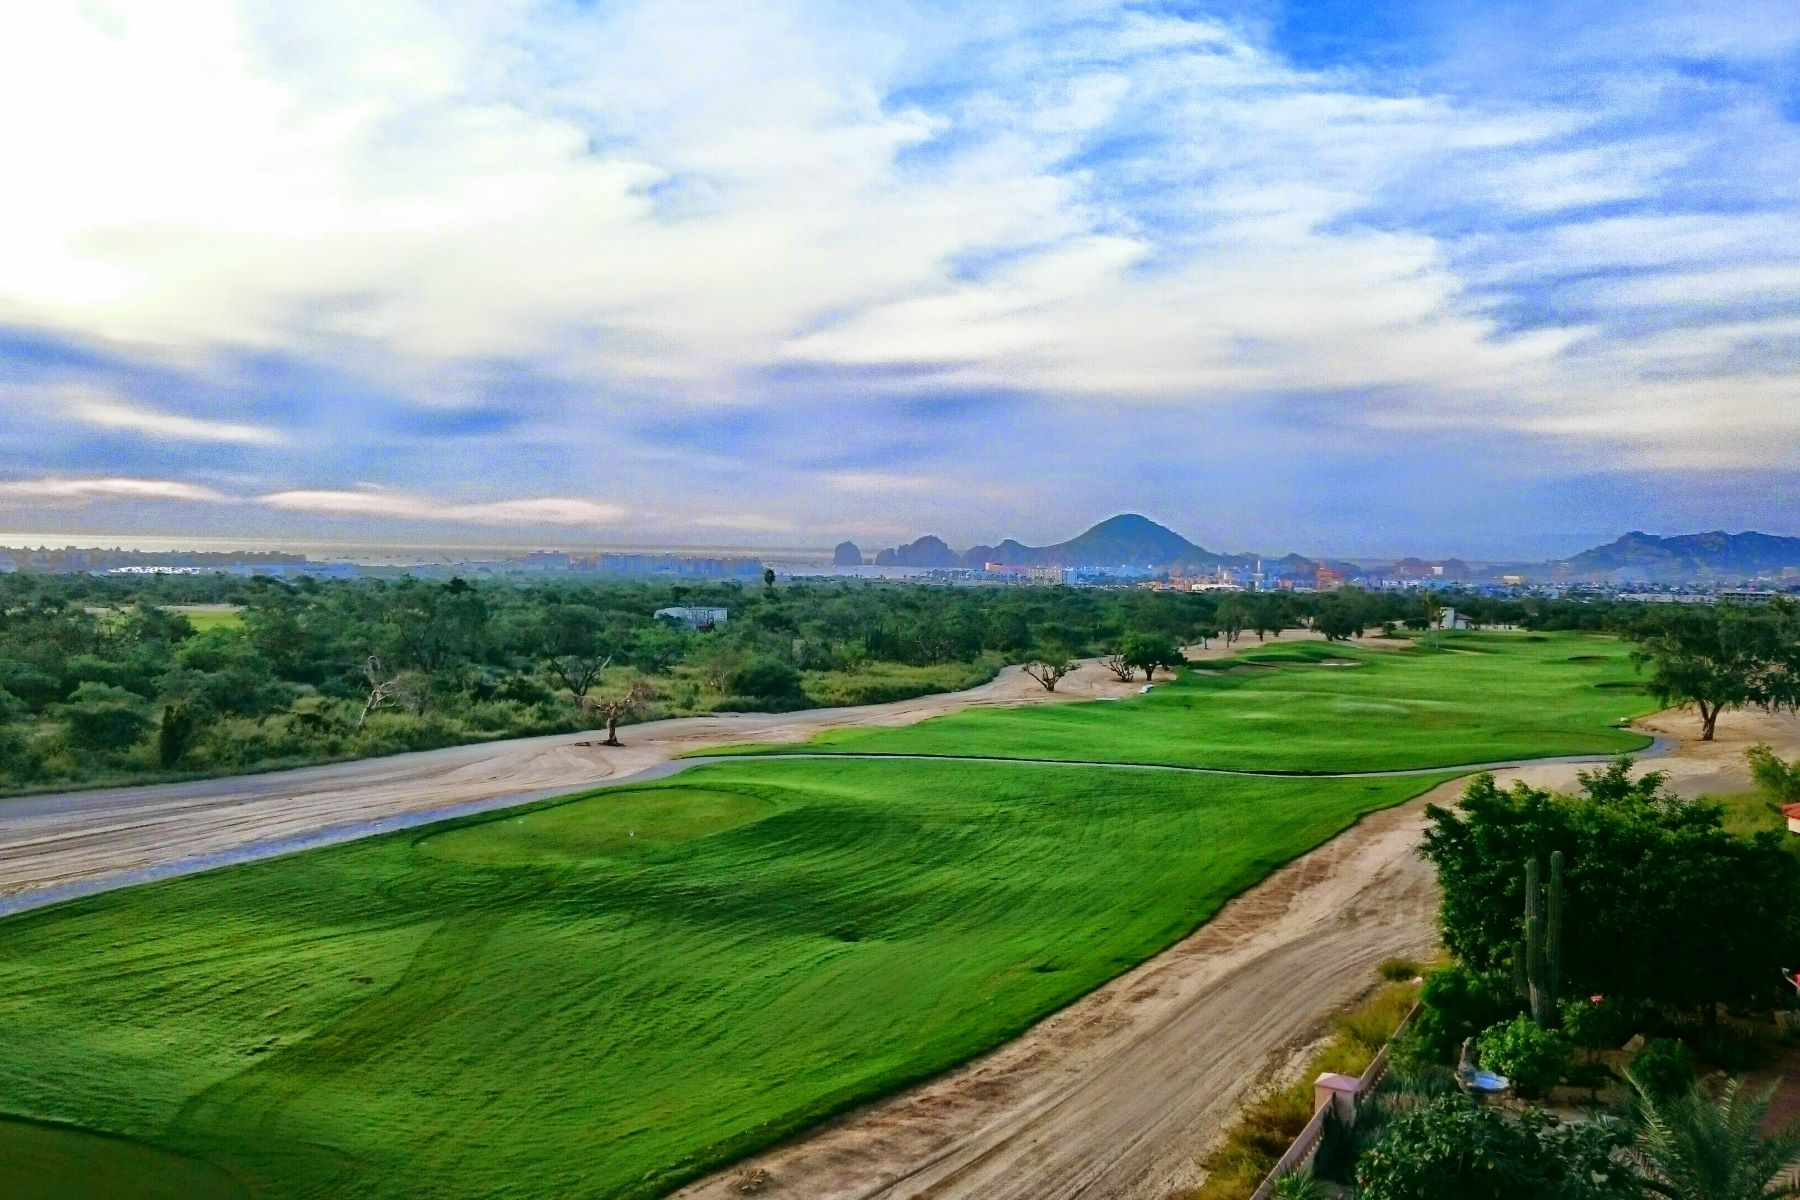 Land for Sale at Lote 103 Country Club Other Baja California Sur, Baja California Sur Mexico